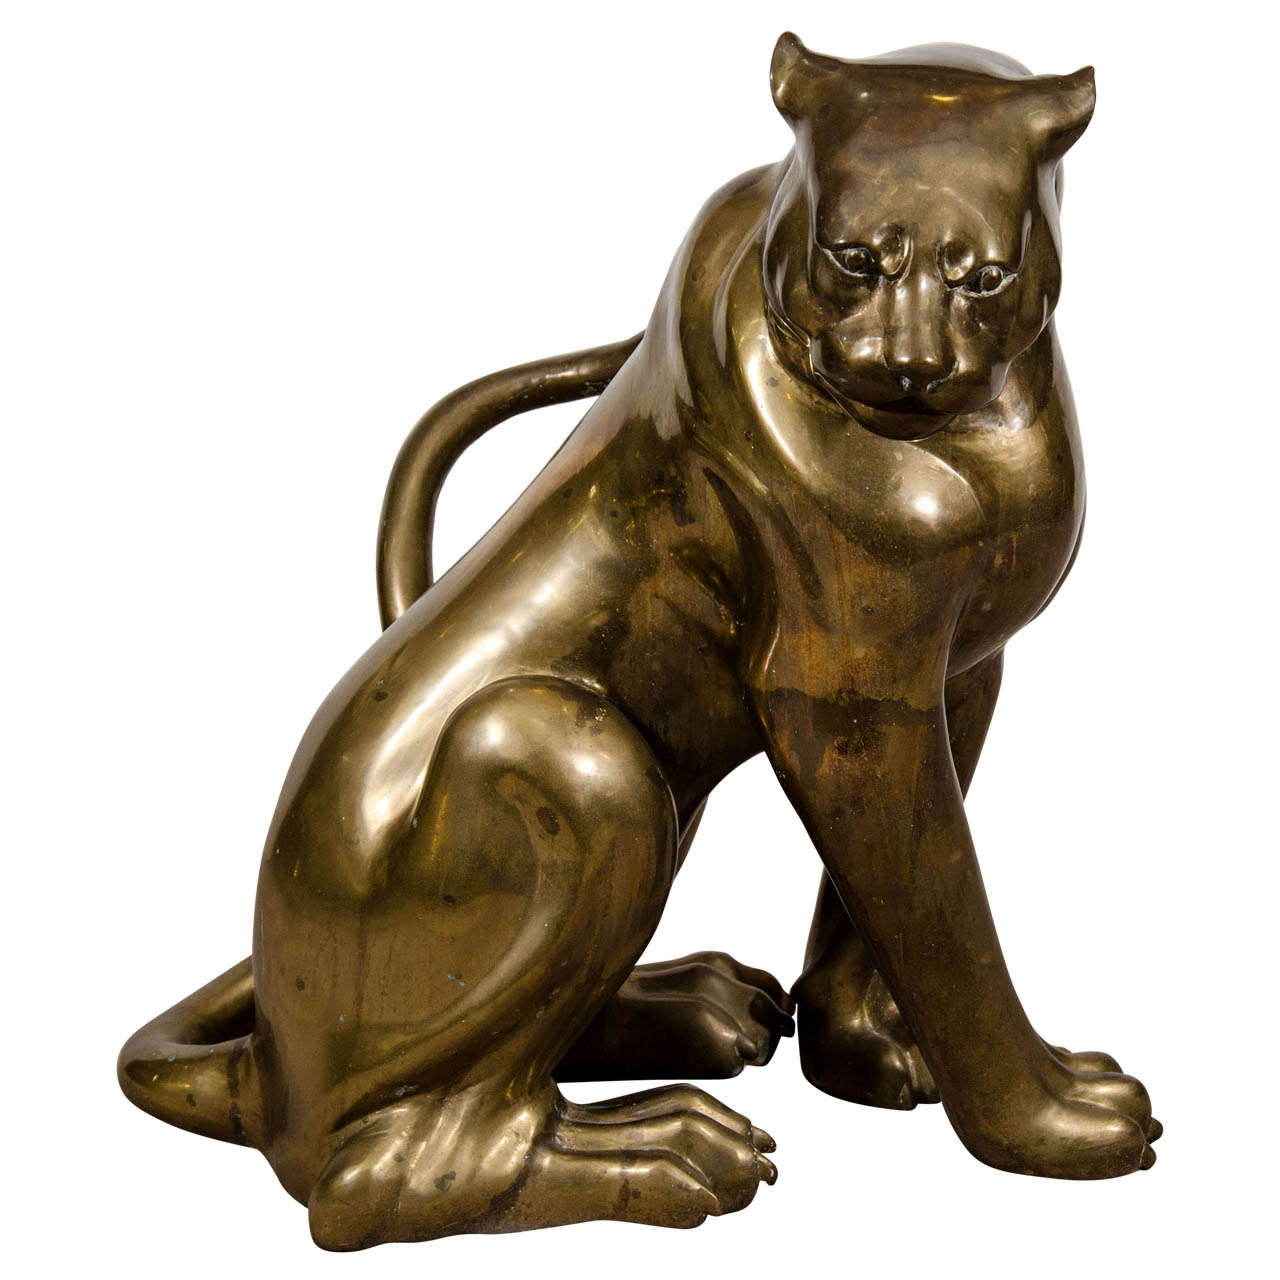 Panther Statue For Sale A Mid Century Brass Sculpture Of A Panther For Sale At 1stdibs